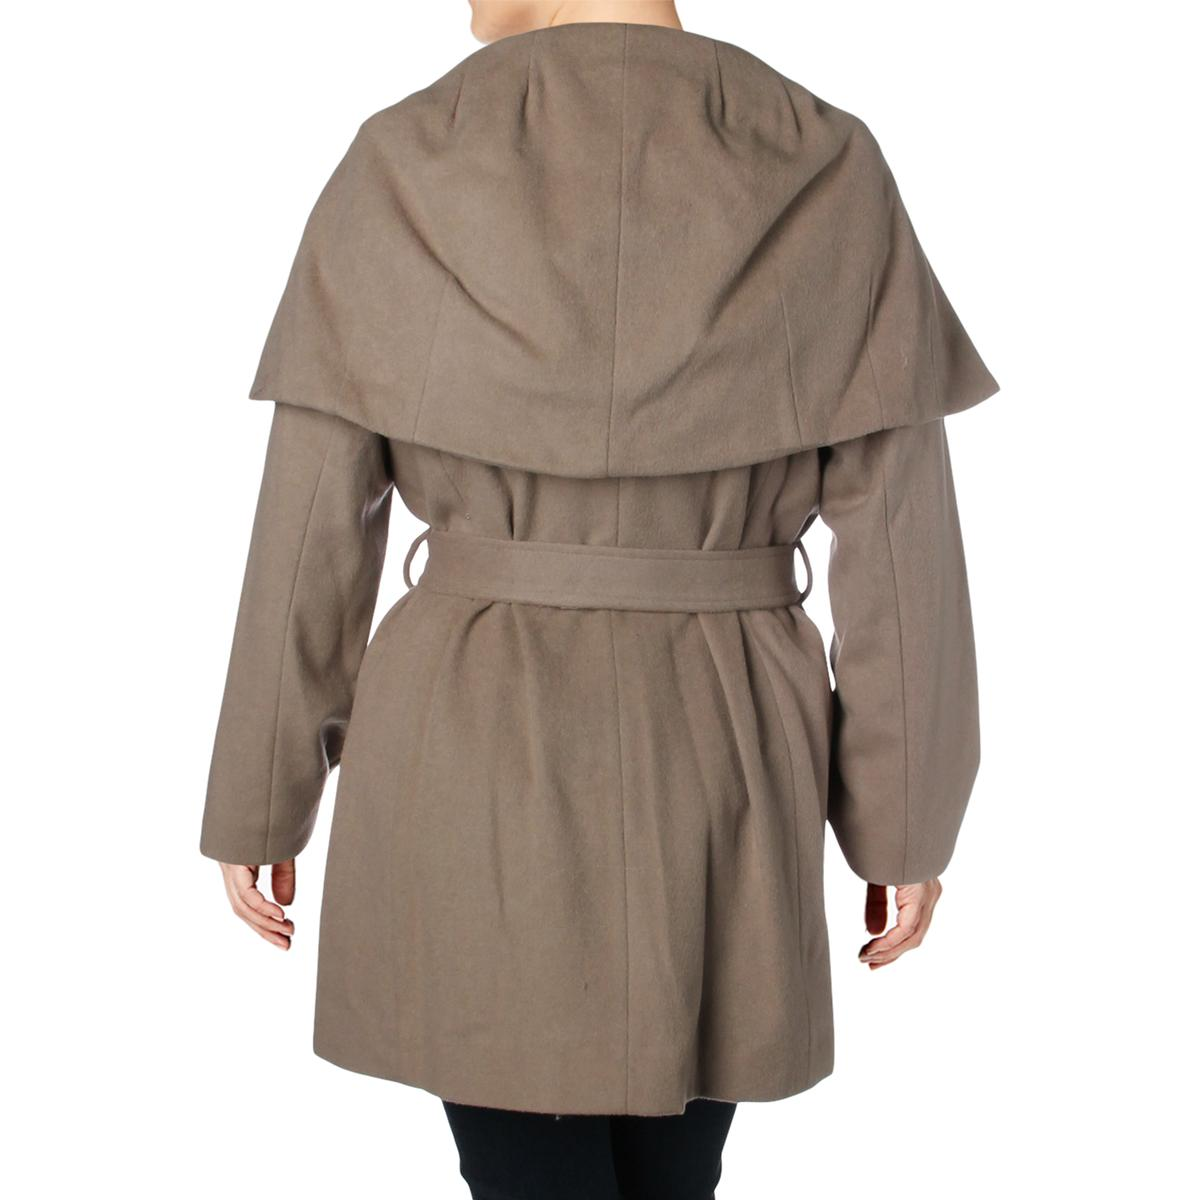 Tahari-Marla-Women-s-Plus-Size-Oversized-Collar-Warm-Wool-Blend-Wrap-Coat thumbnail 4